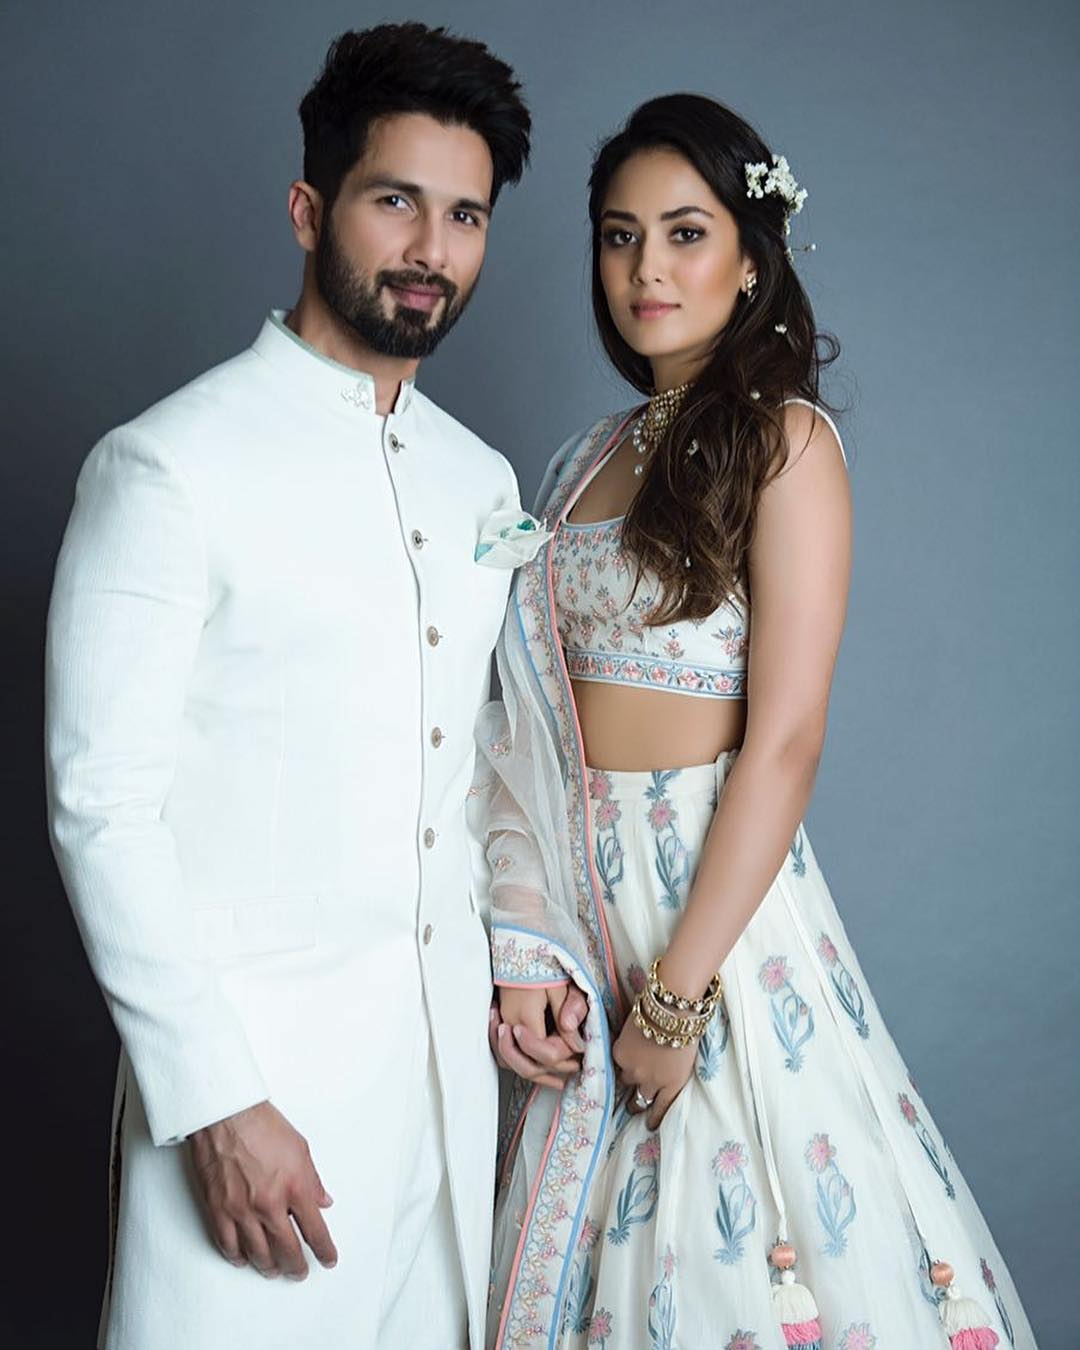 Shahid Kapoor and wife Mira Rajput made their debut as showstoppers for designer Anita Dongre at Lakme Fashion Week 2018.